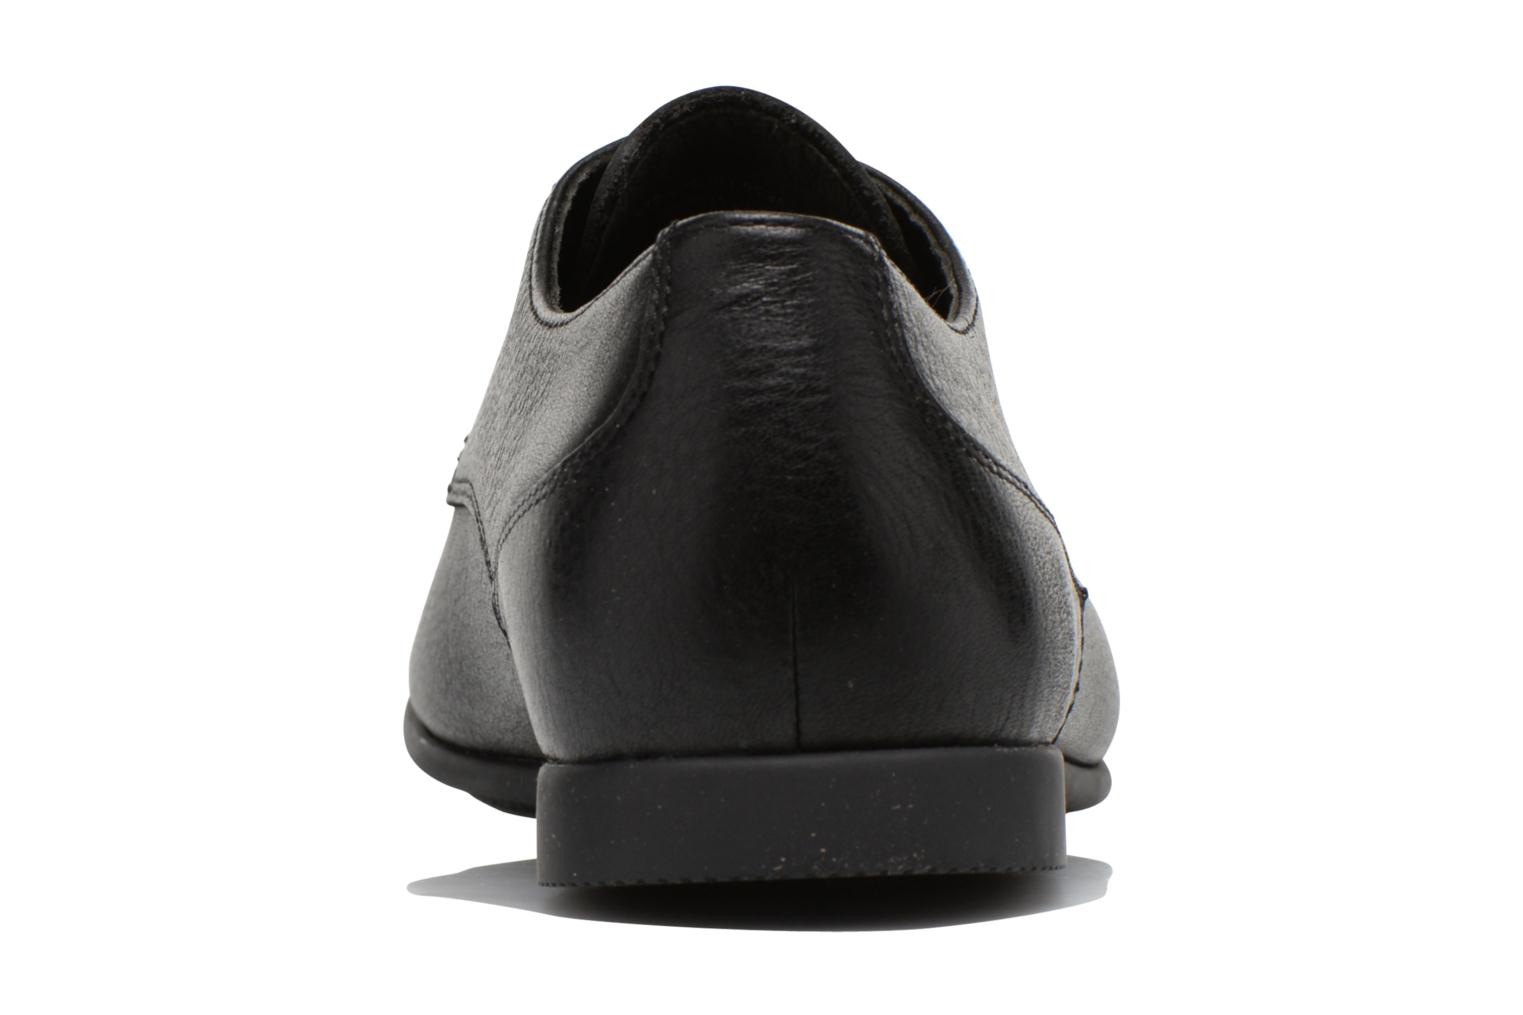 Slippers Sun K100070 Sauvage Negro/Slippers Negro